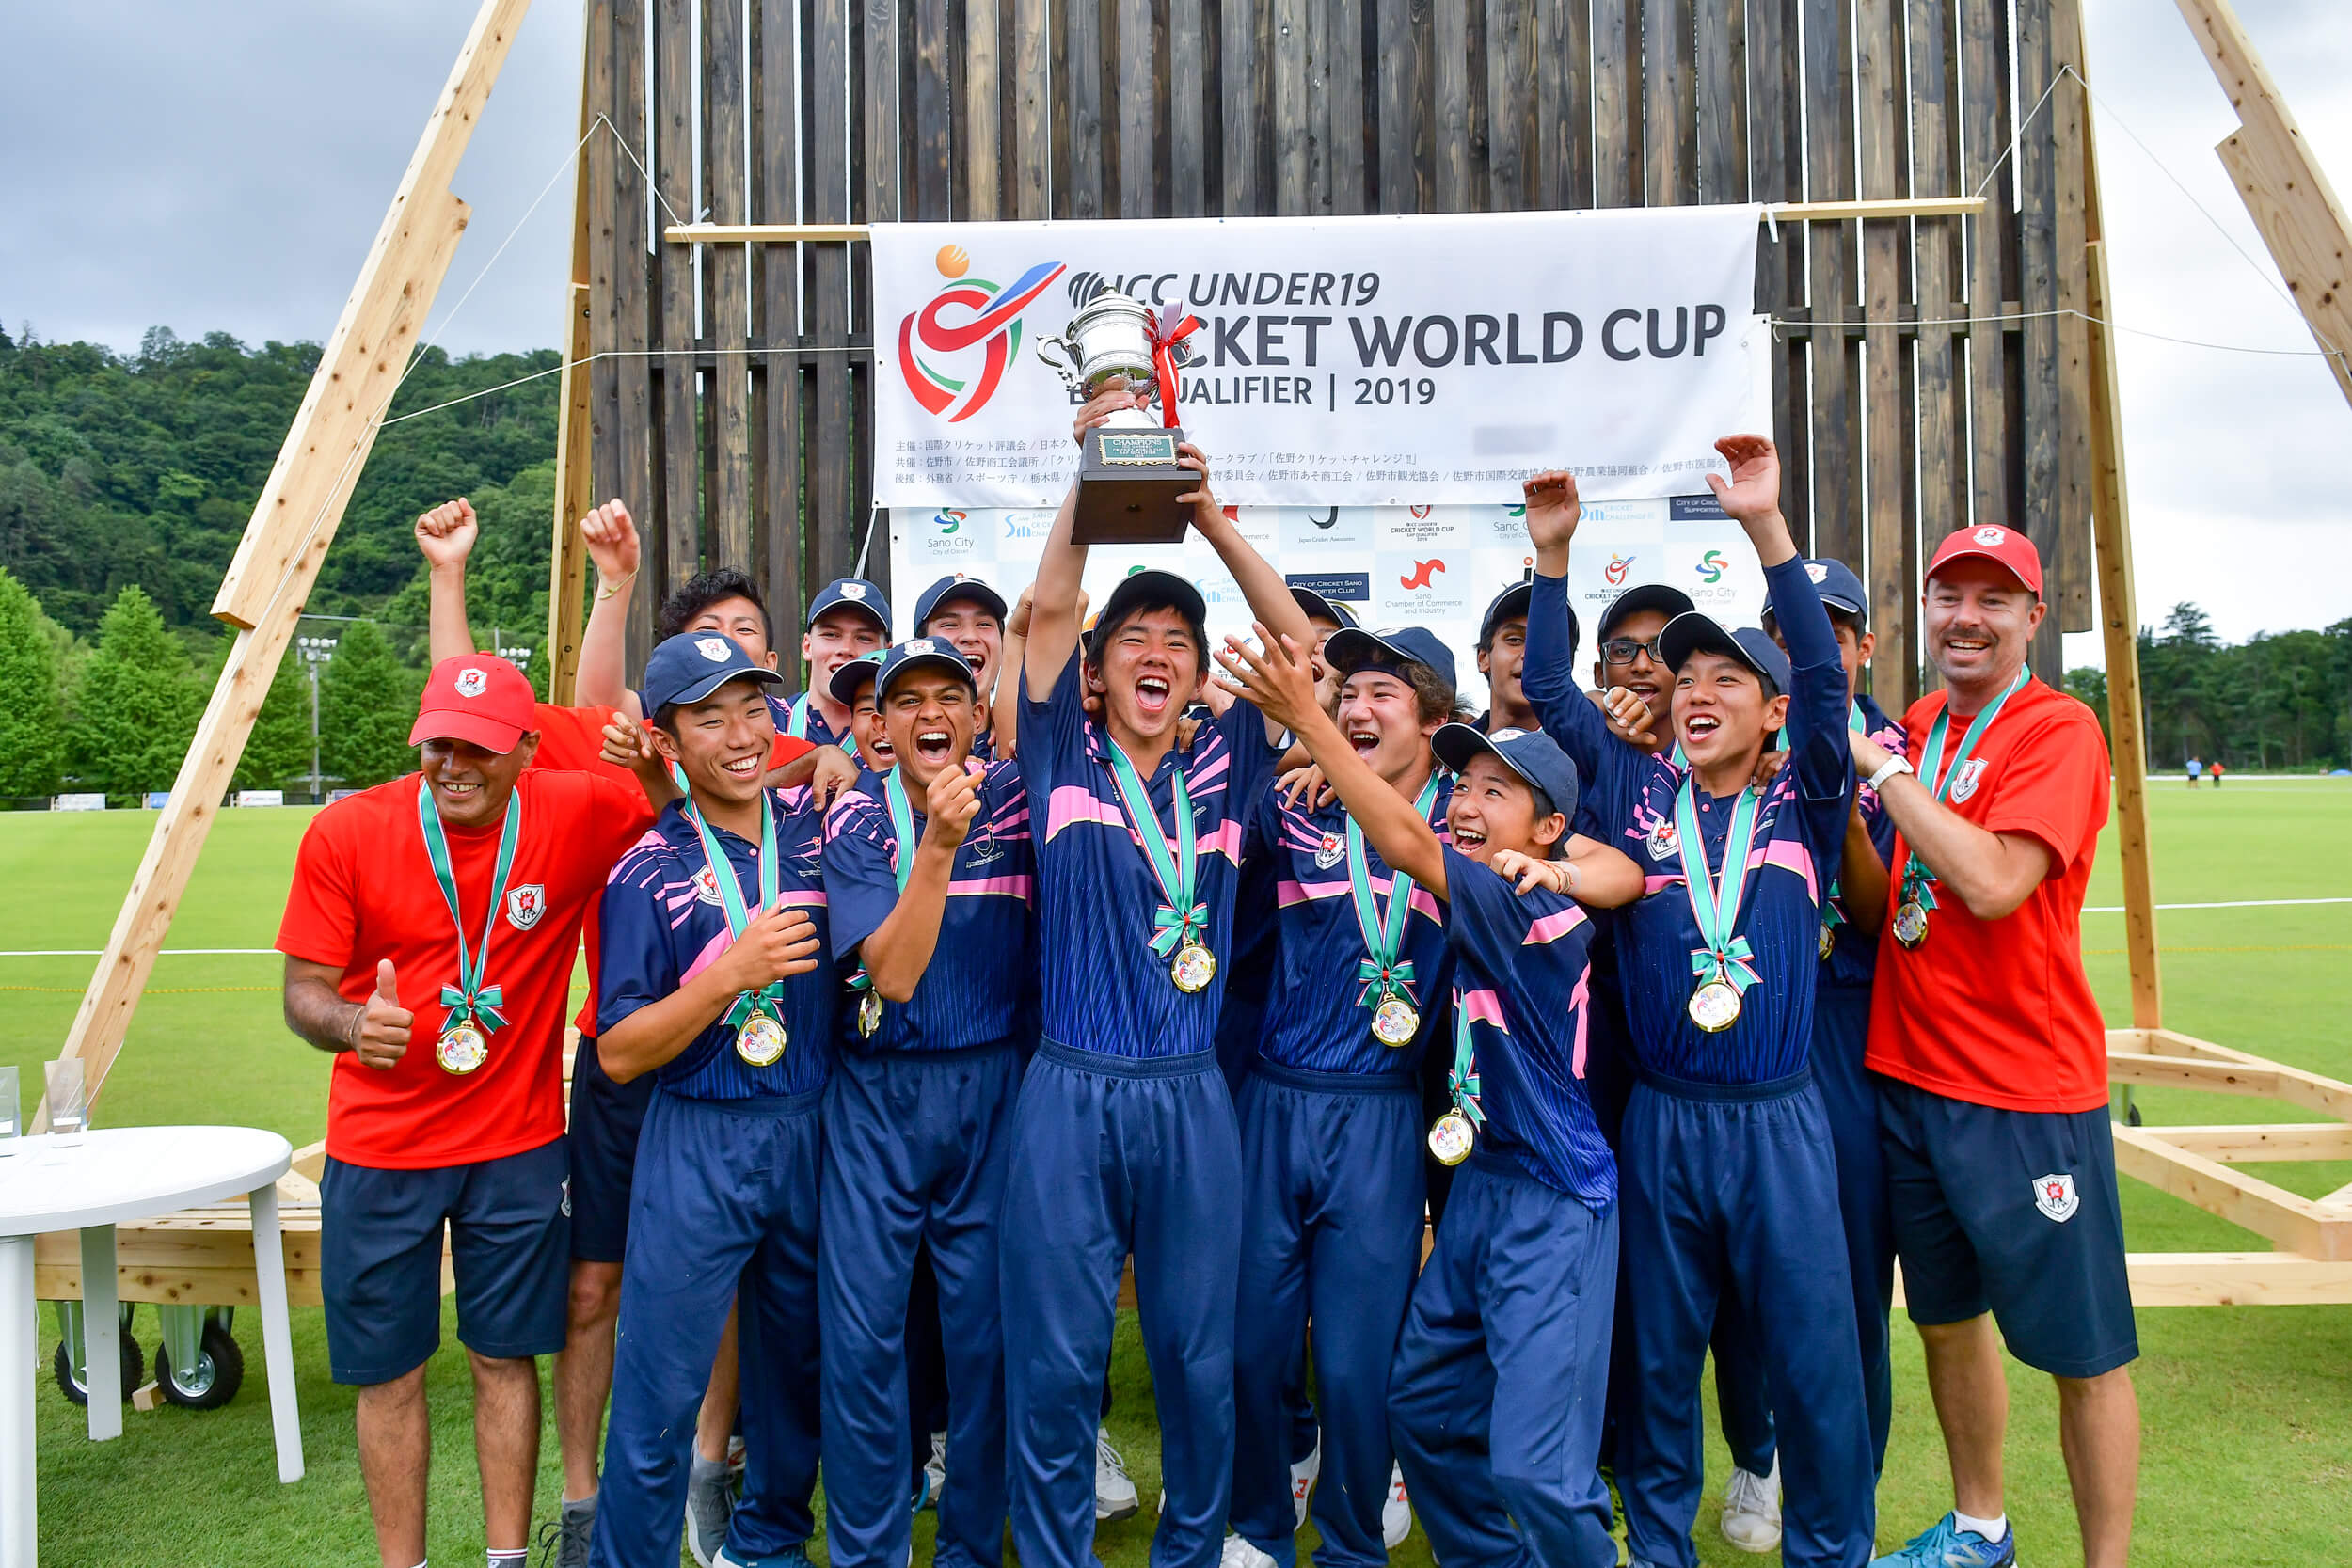 Japan's U19 men's cricket team, in a blue kit with pink details, celebrate qualification for the U19 World Cup